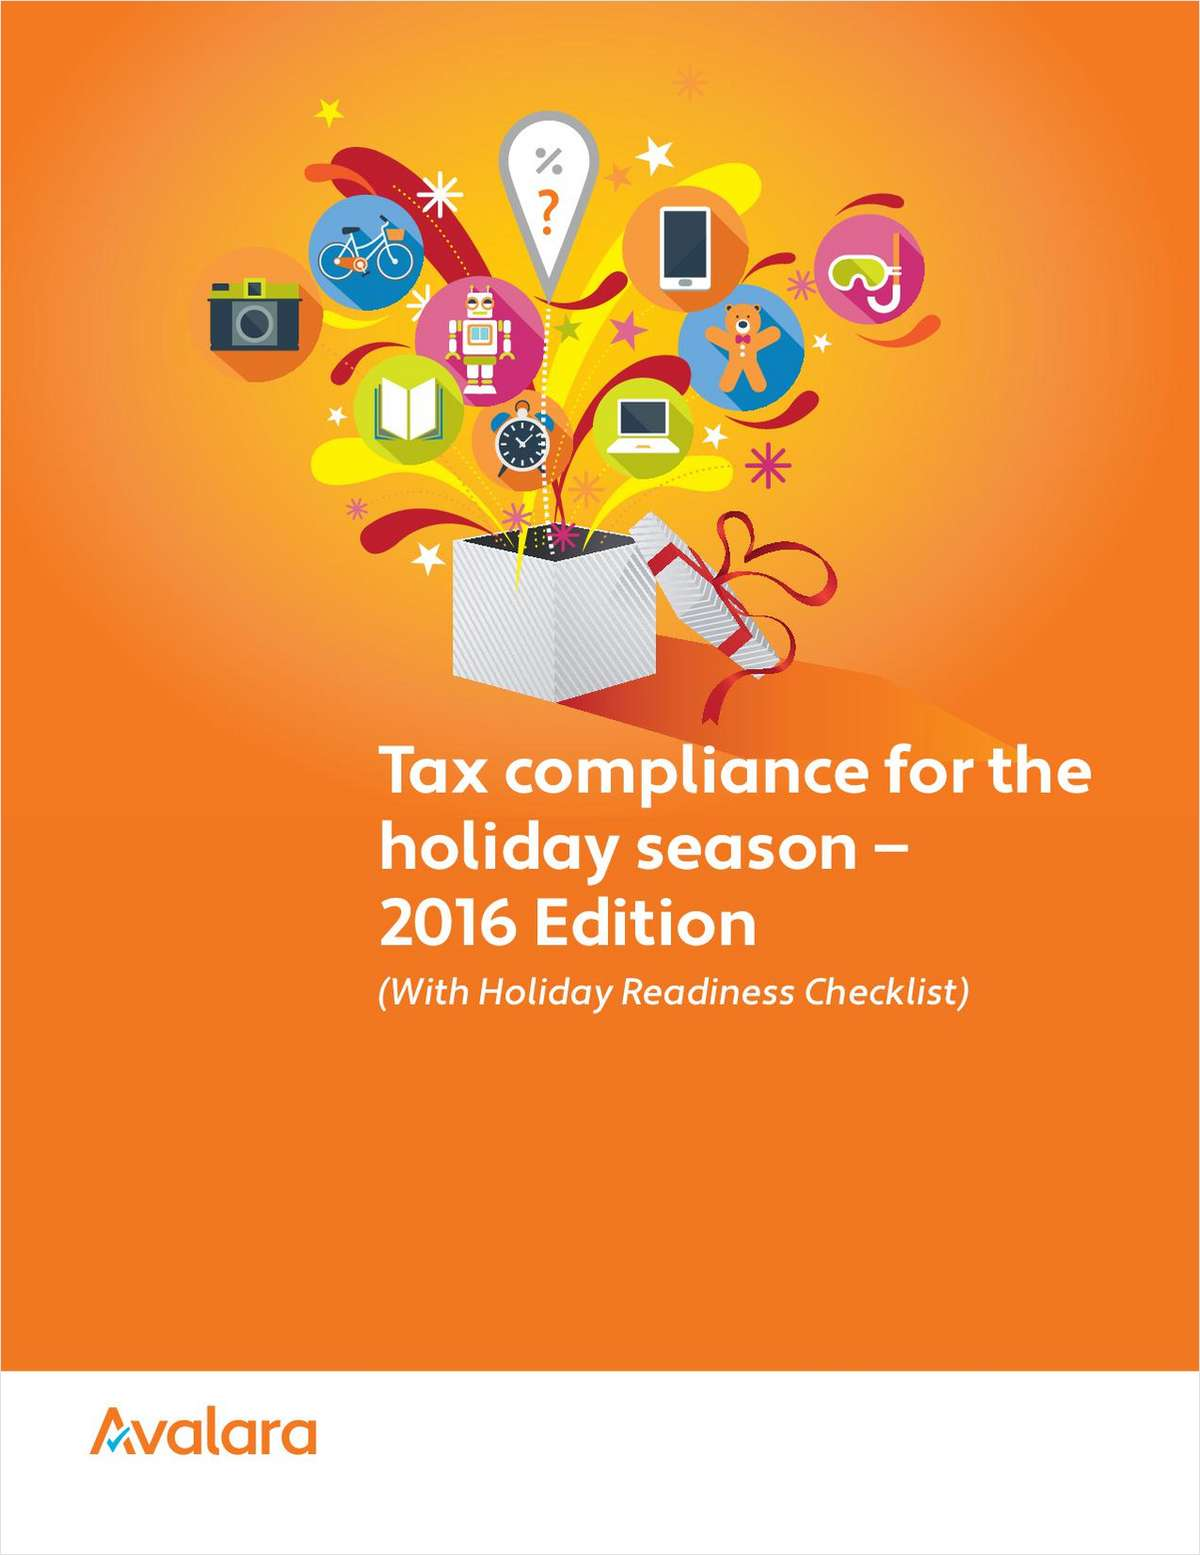 Tax compliance for the holiday season - 2016 Edition (With Holiday Readiness Checklist)